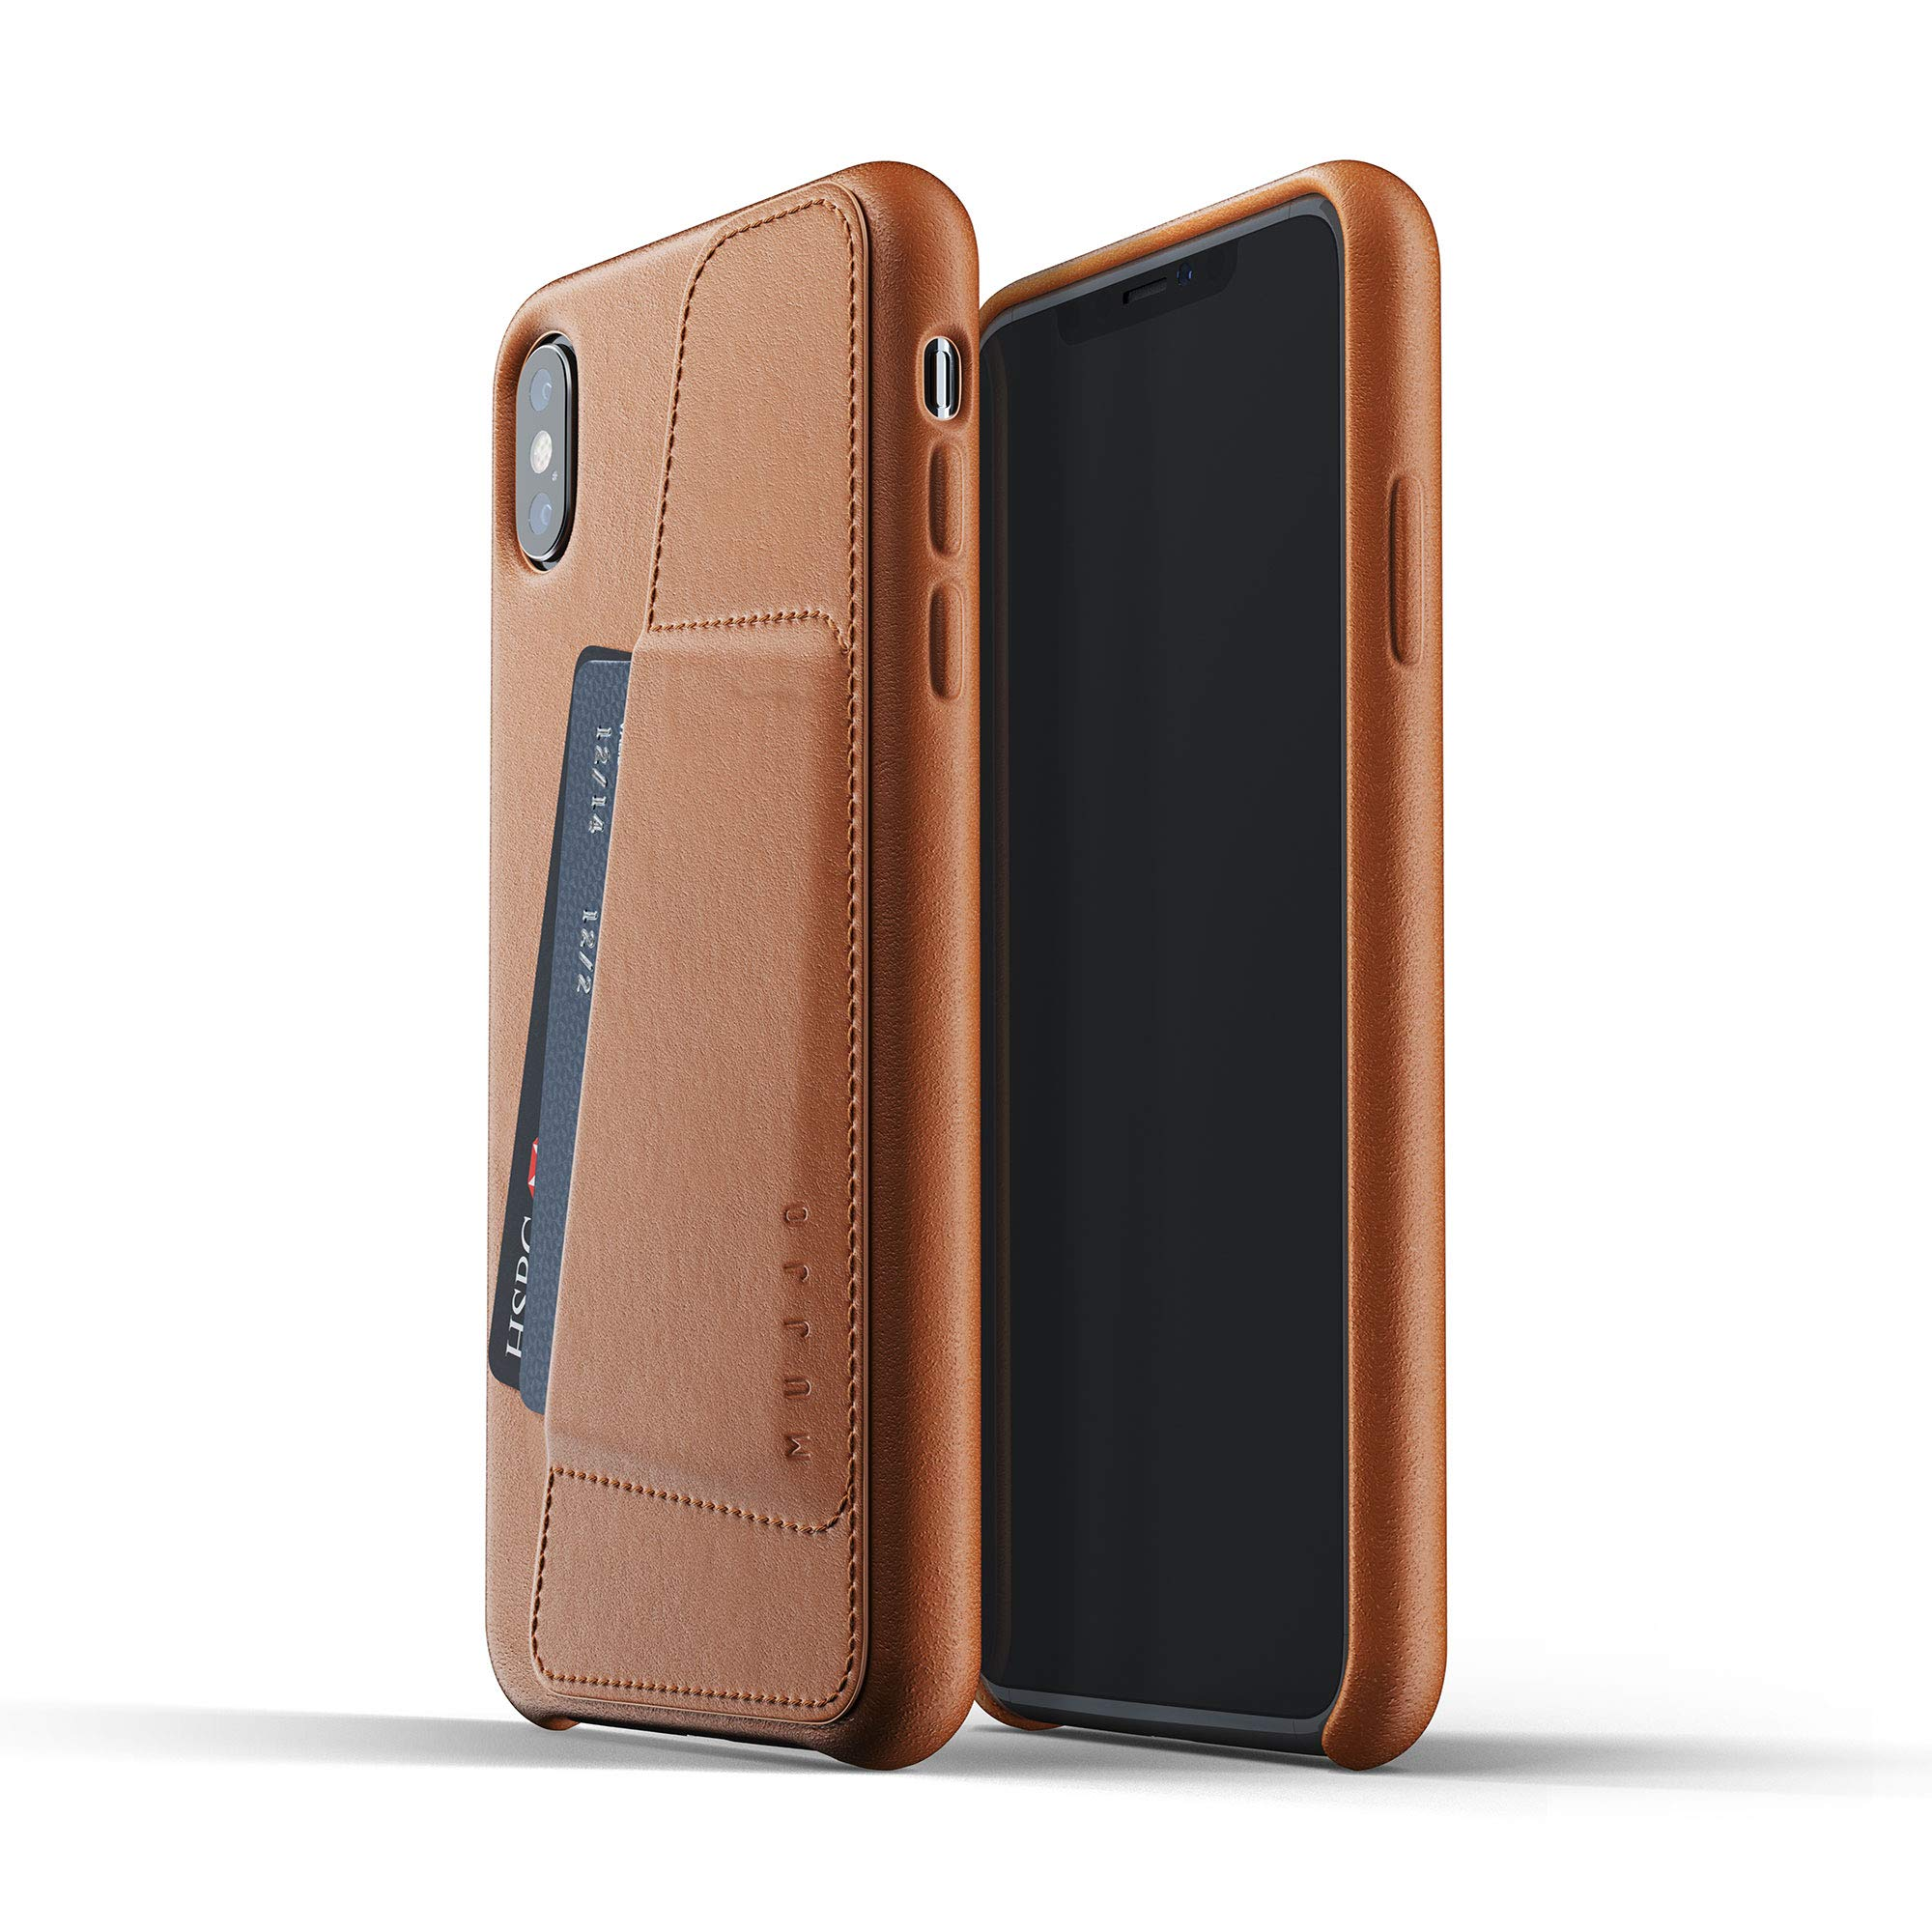 Mujjo Full Leather Wallet Case Compatible with iPhone Xs Max | Real Leather with Natural Aging Effect, 2-3 Card Pocket, 1MM Protective Screen Bezel, Japanese Suede Lining (Tan)